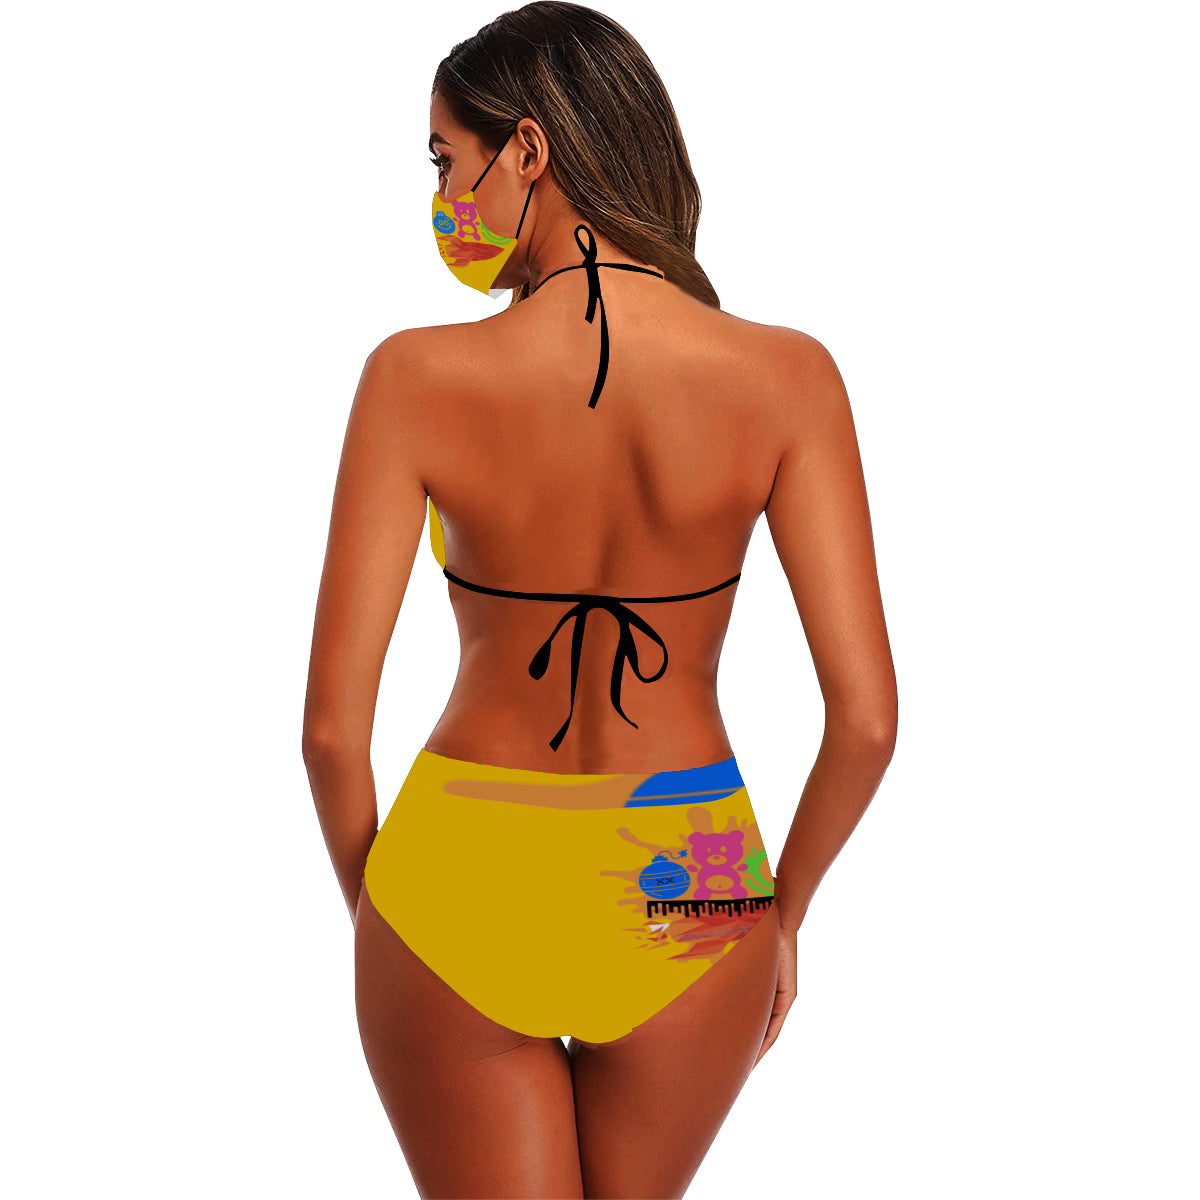 Hendriix Homies WORLD Debut Bikini Stringy Selvedge Bikini Set with Mouth Mask